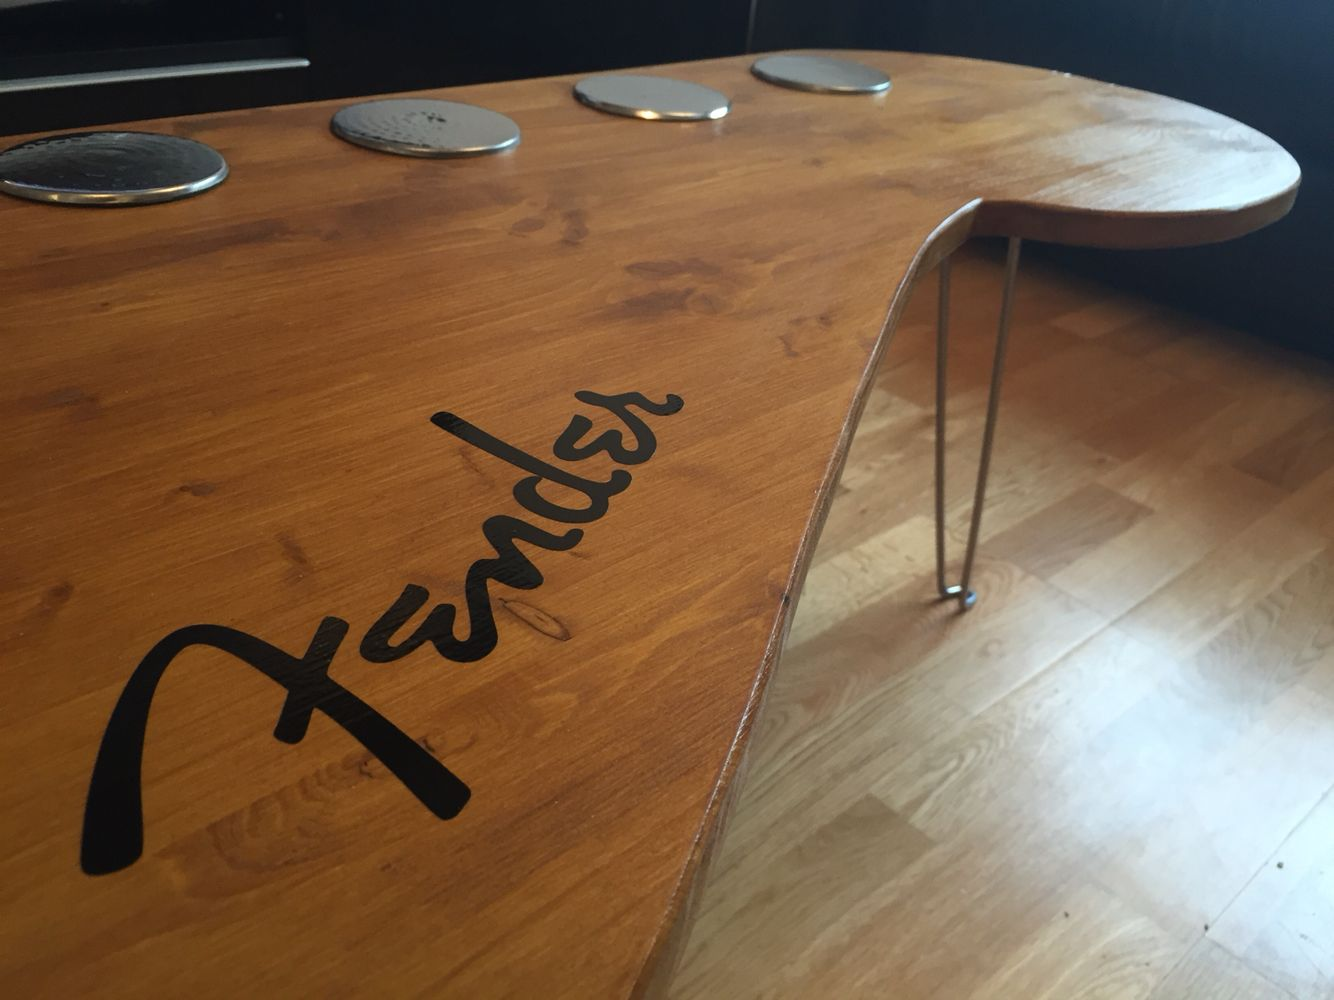 Fender coffee table